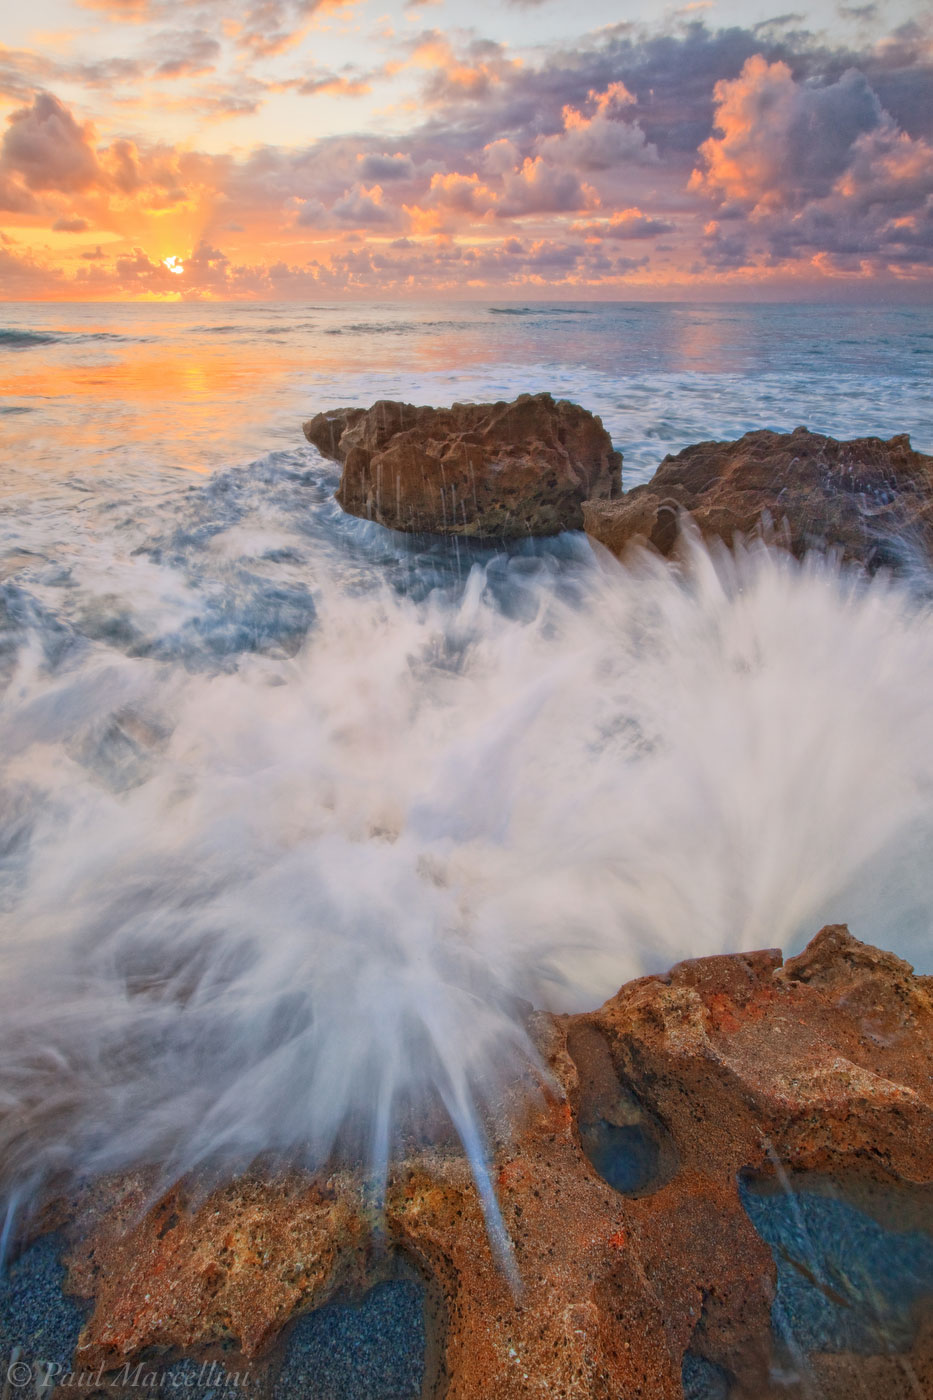 blowing rocks, jupiter, island, waves, anastasia formation, coral cove, florida, south florida, nature, photography, , photo